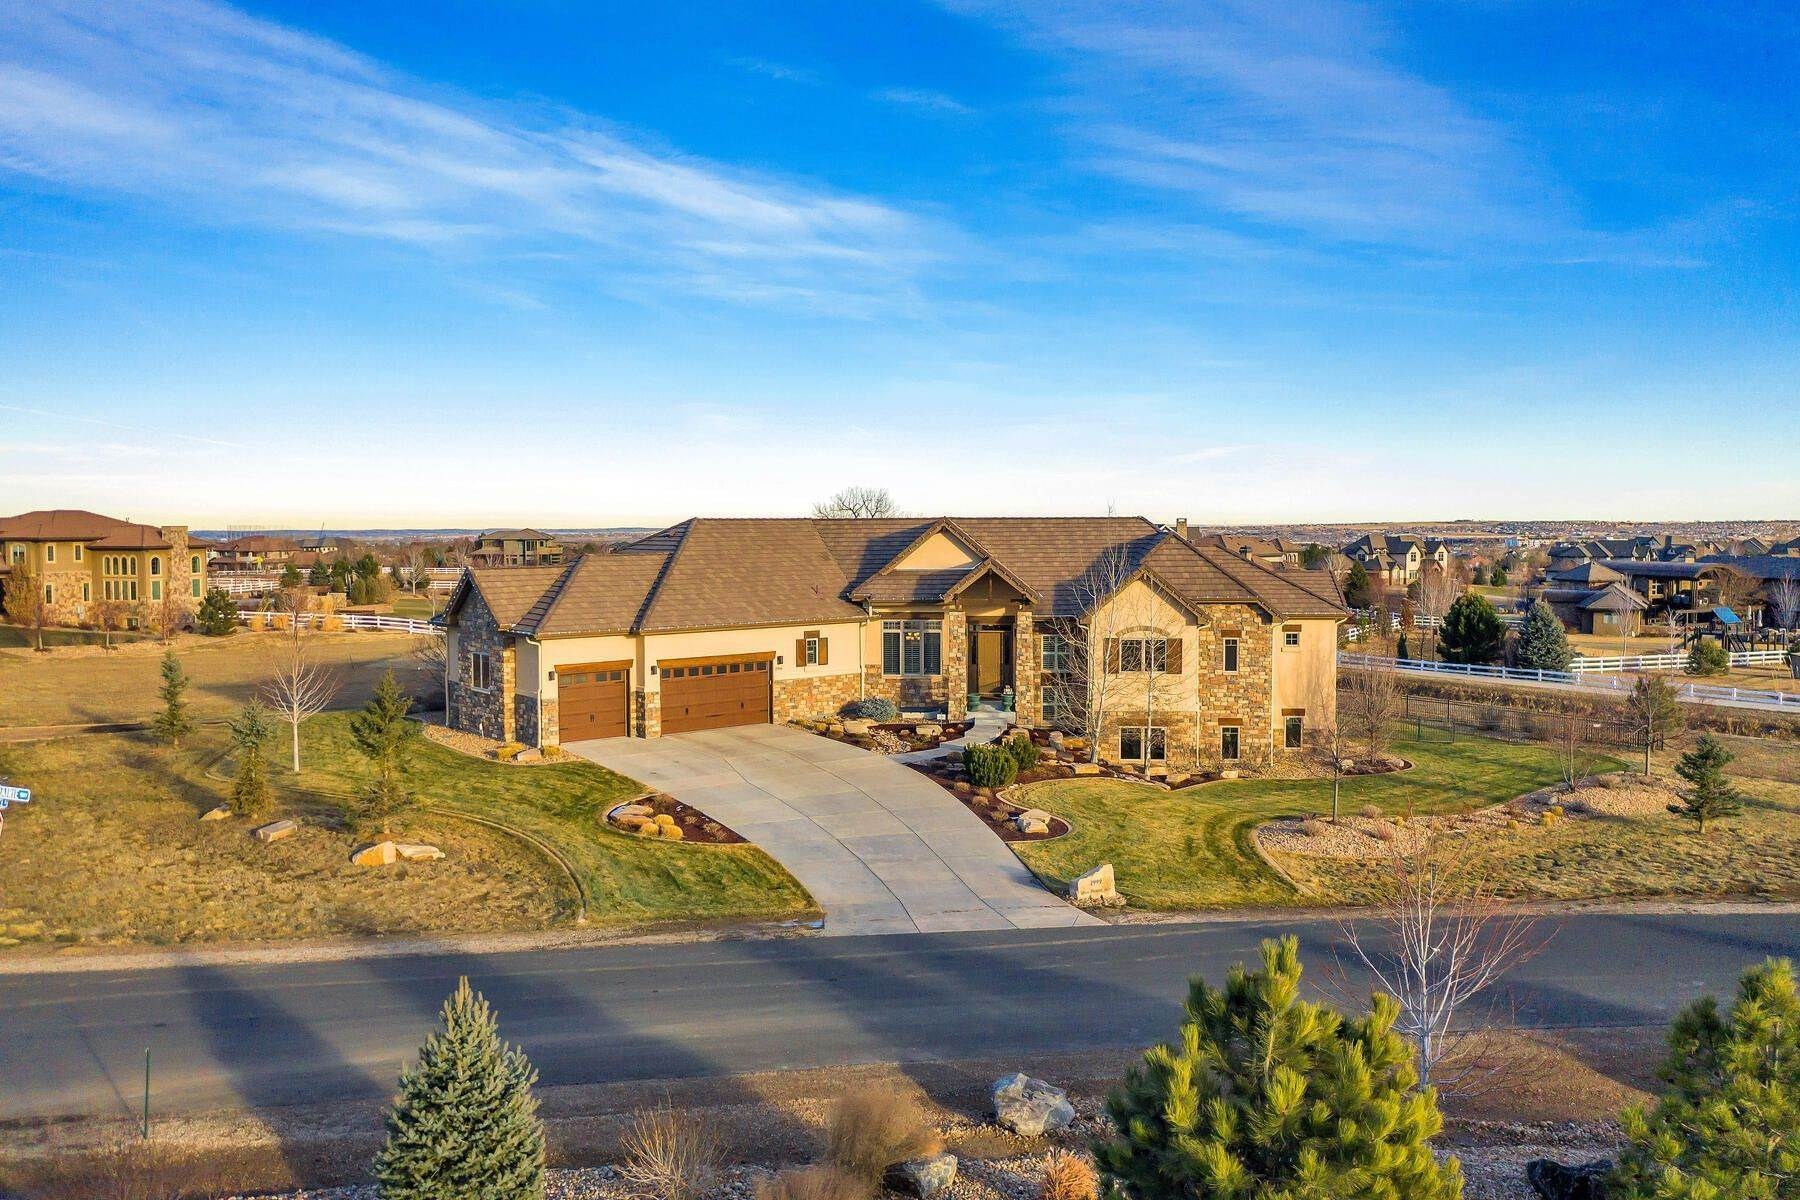 Single Family Homes for Sale at 2999 High Prairie, Broomfield, Co, 80023 2999 High Prairie Way Broomfield, Colorado 80023 United States